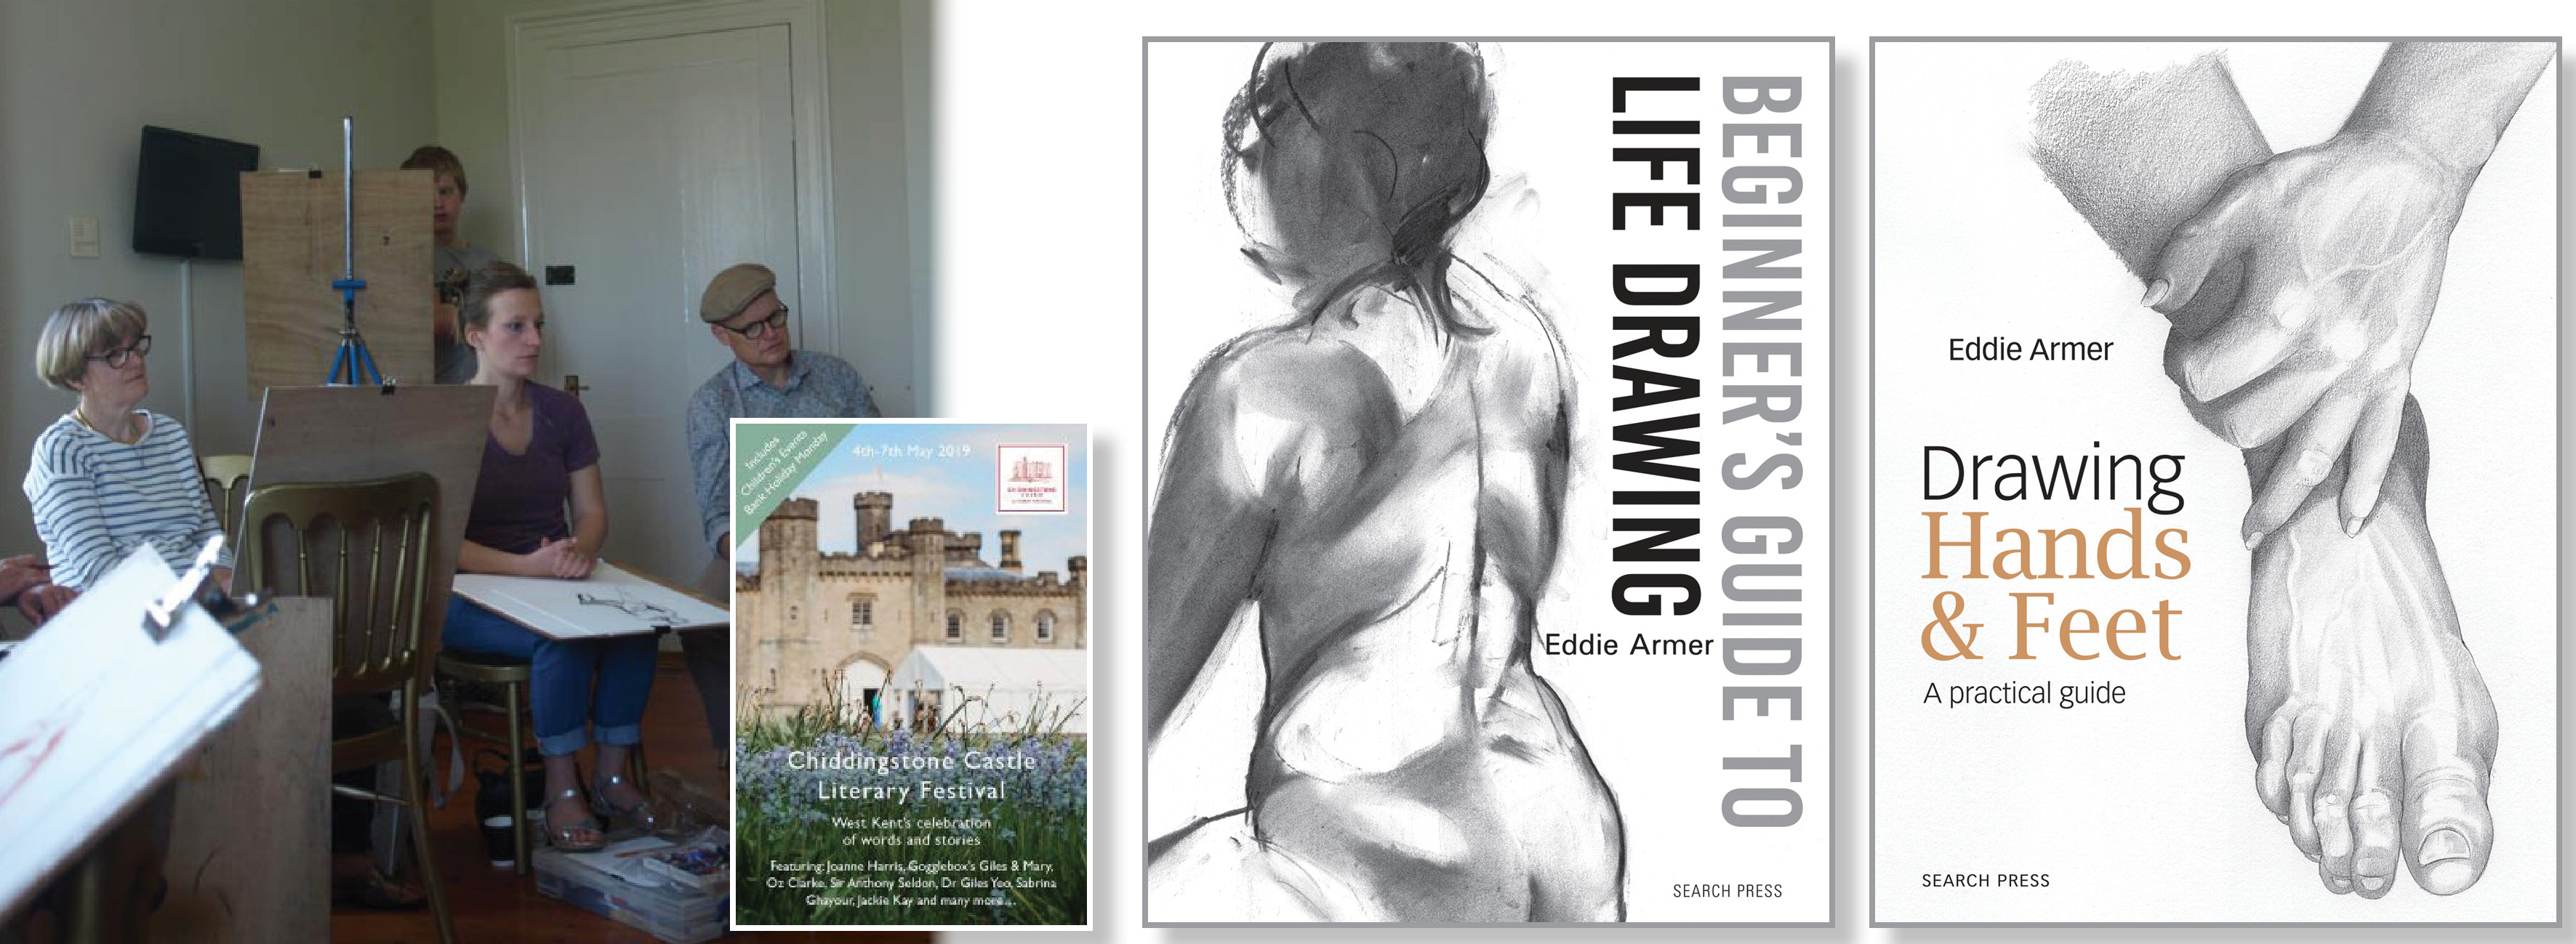 Eddie Armer - Life Drawing Workshops at Chiddingstone Literary Festival